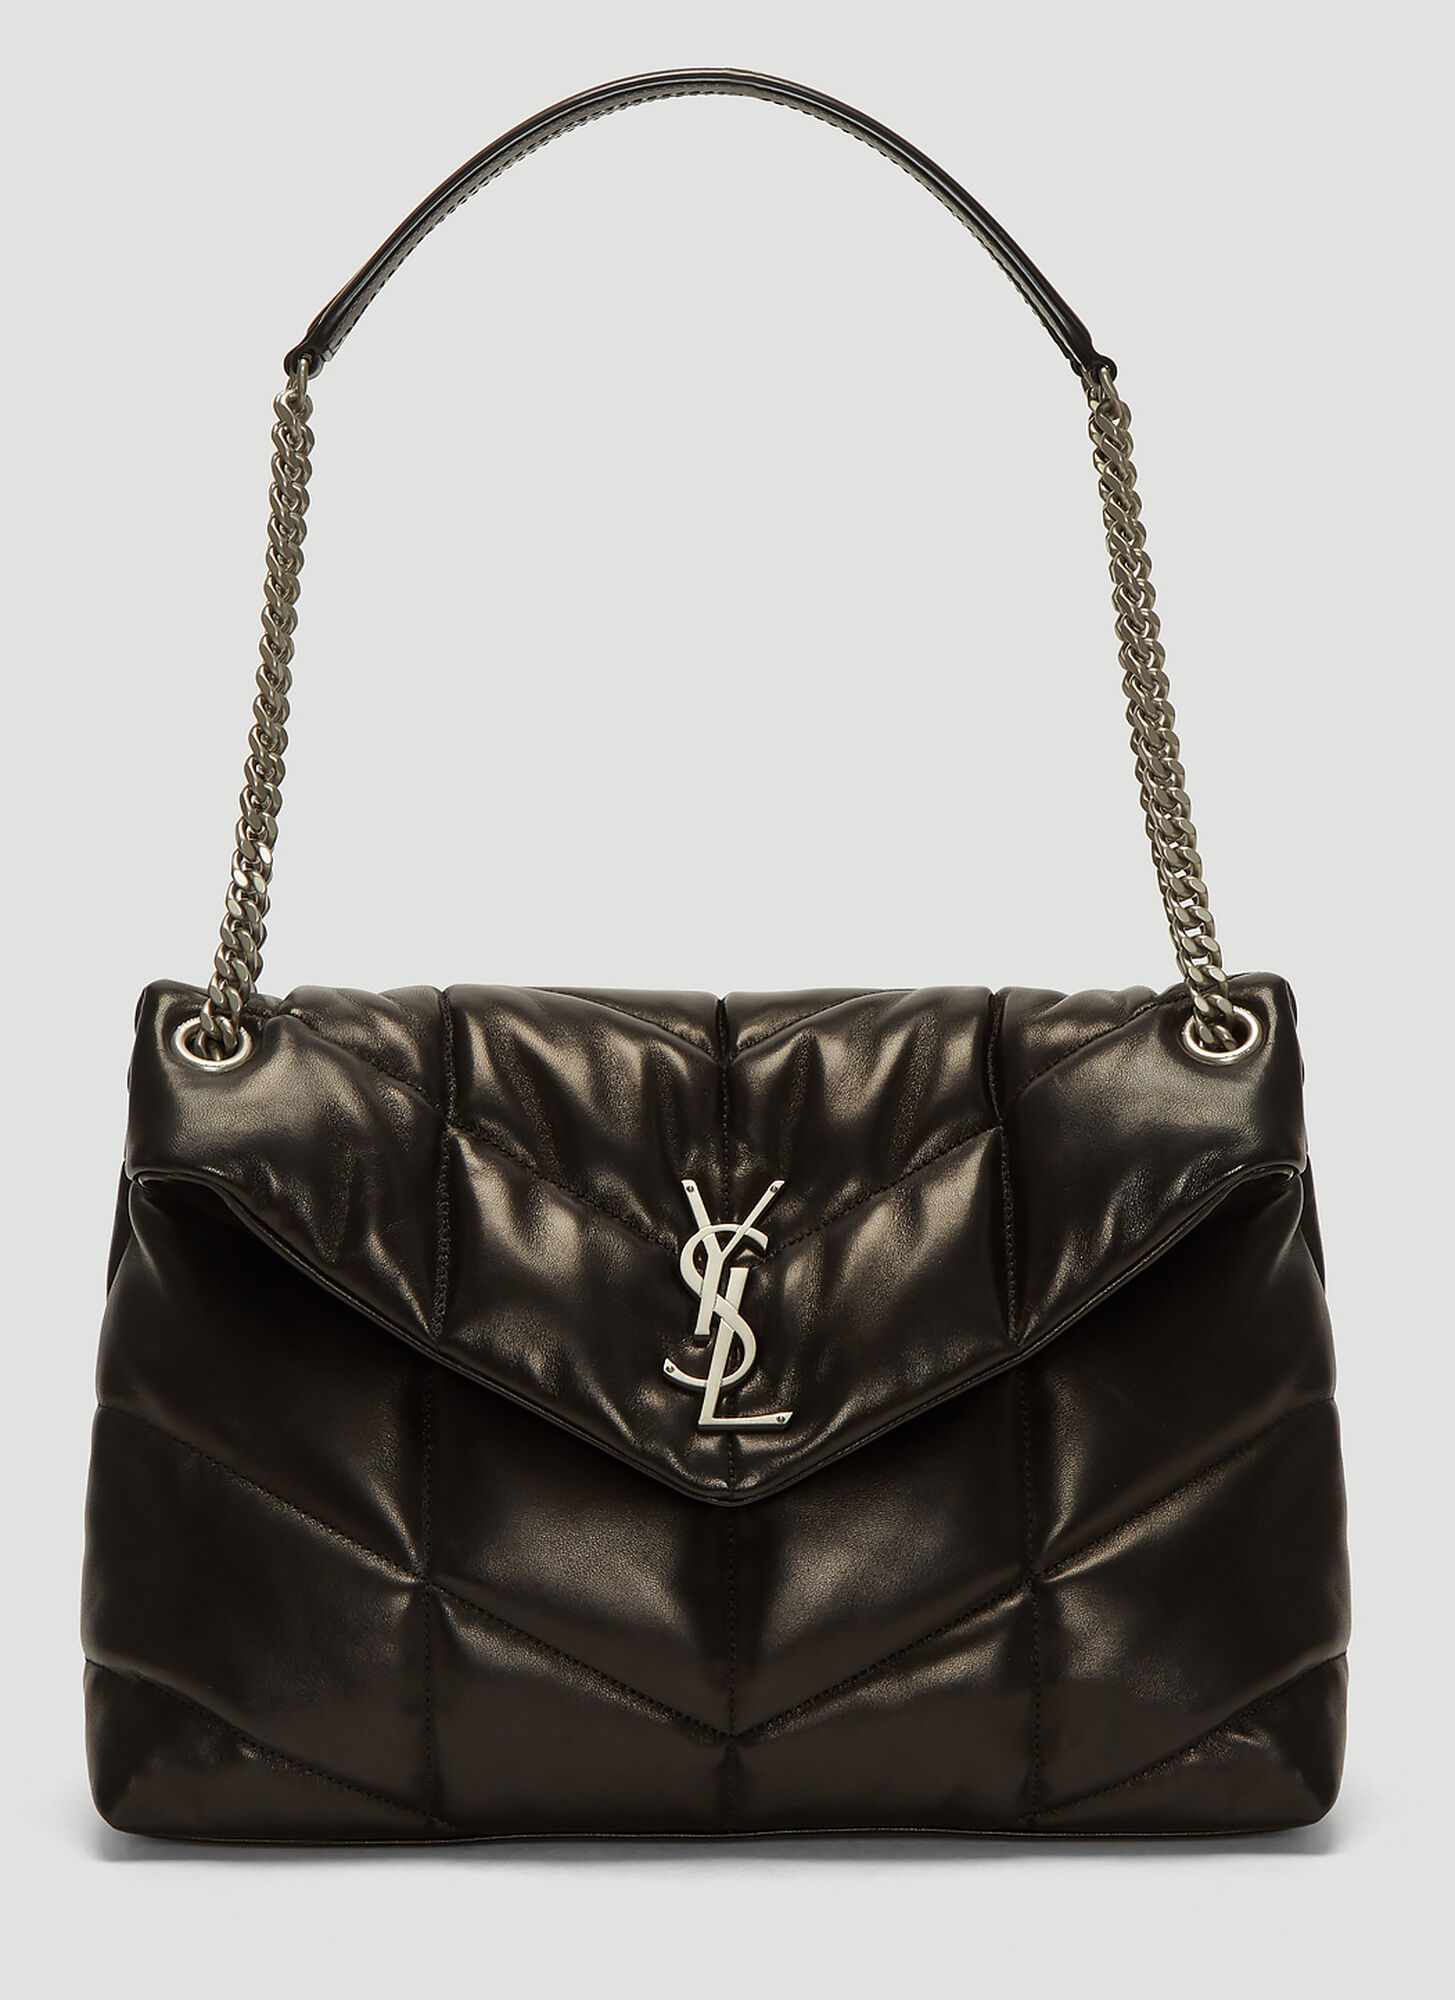 Saint Laurent Quilted Lou Lou Bag in Black